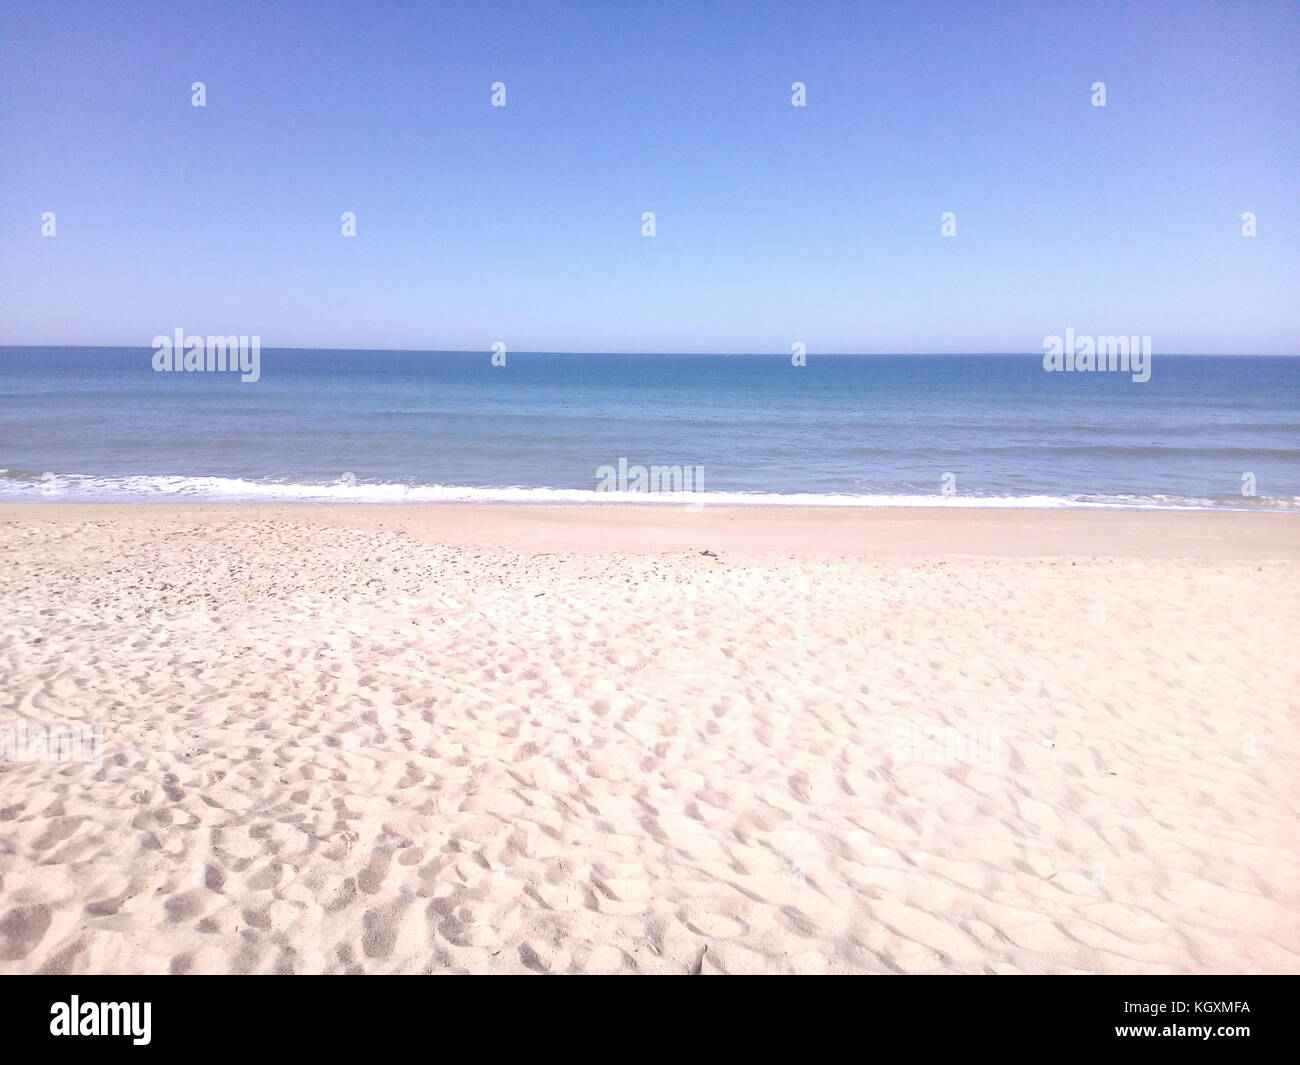 empty beach view with flat ocean on blue sky Stock Photo